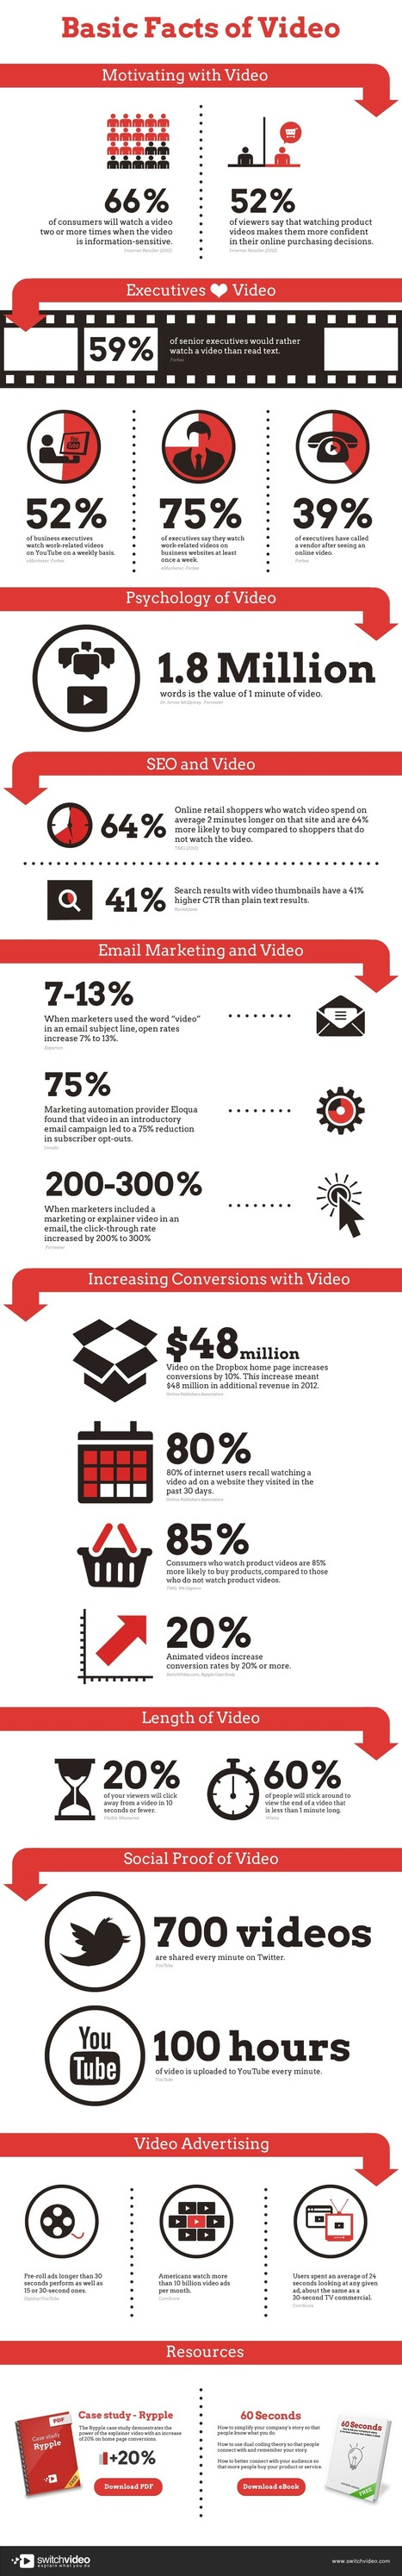 Latest Stats on Video Marketing [Infographic] | Visual Content Strategy | Scoop.it